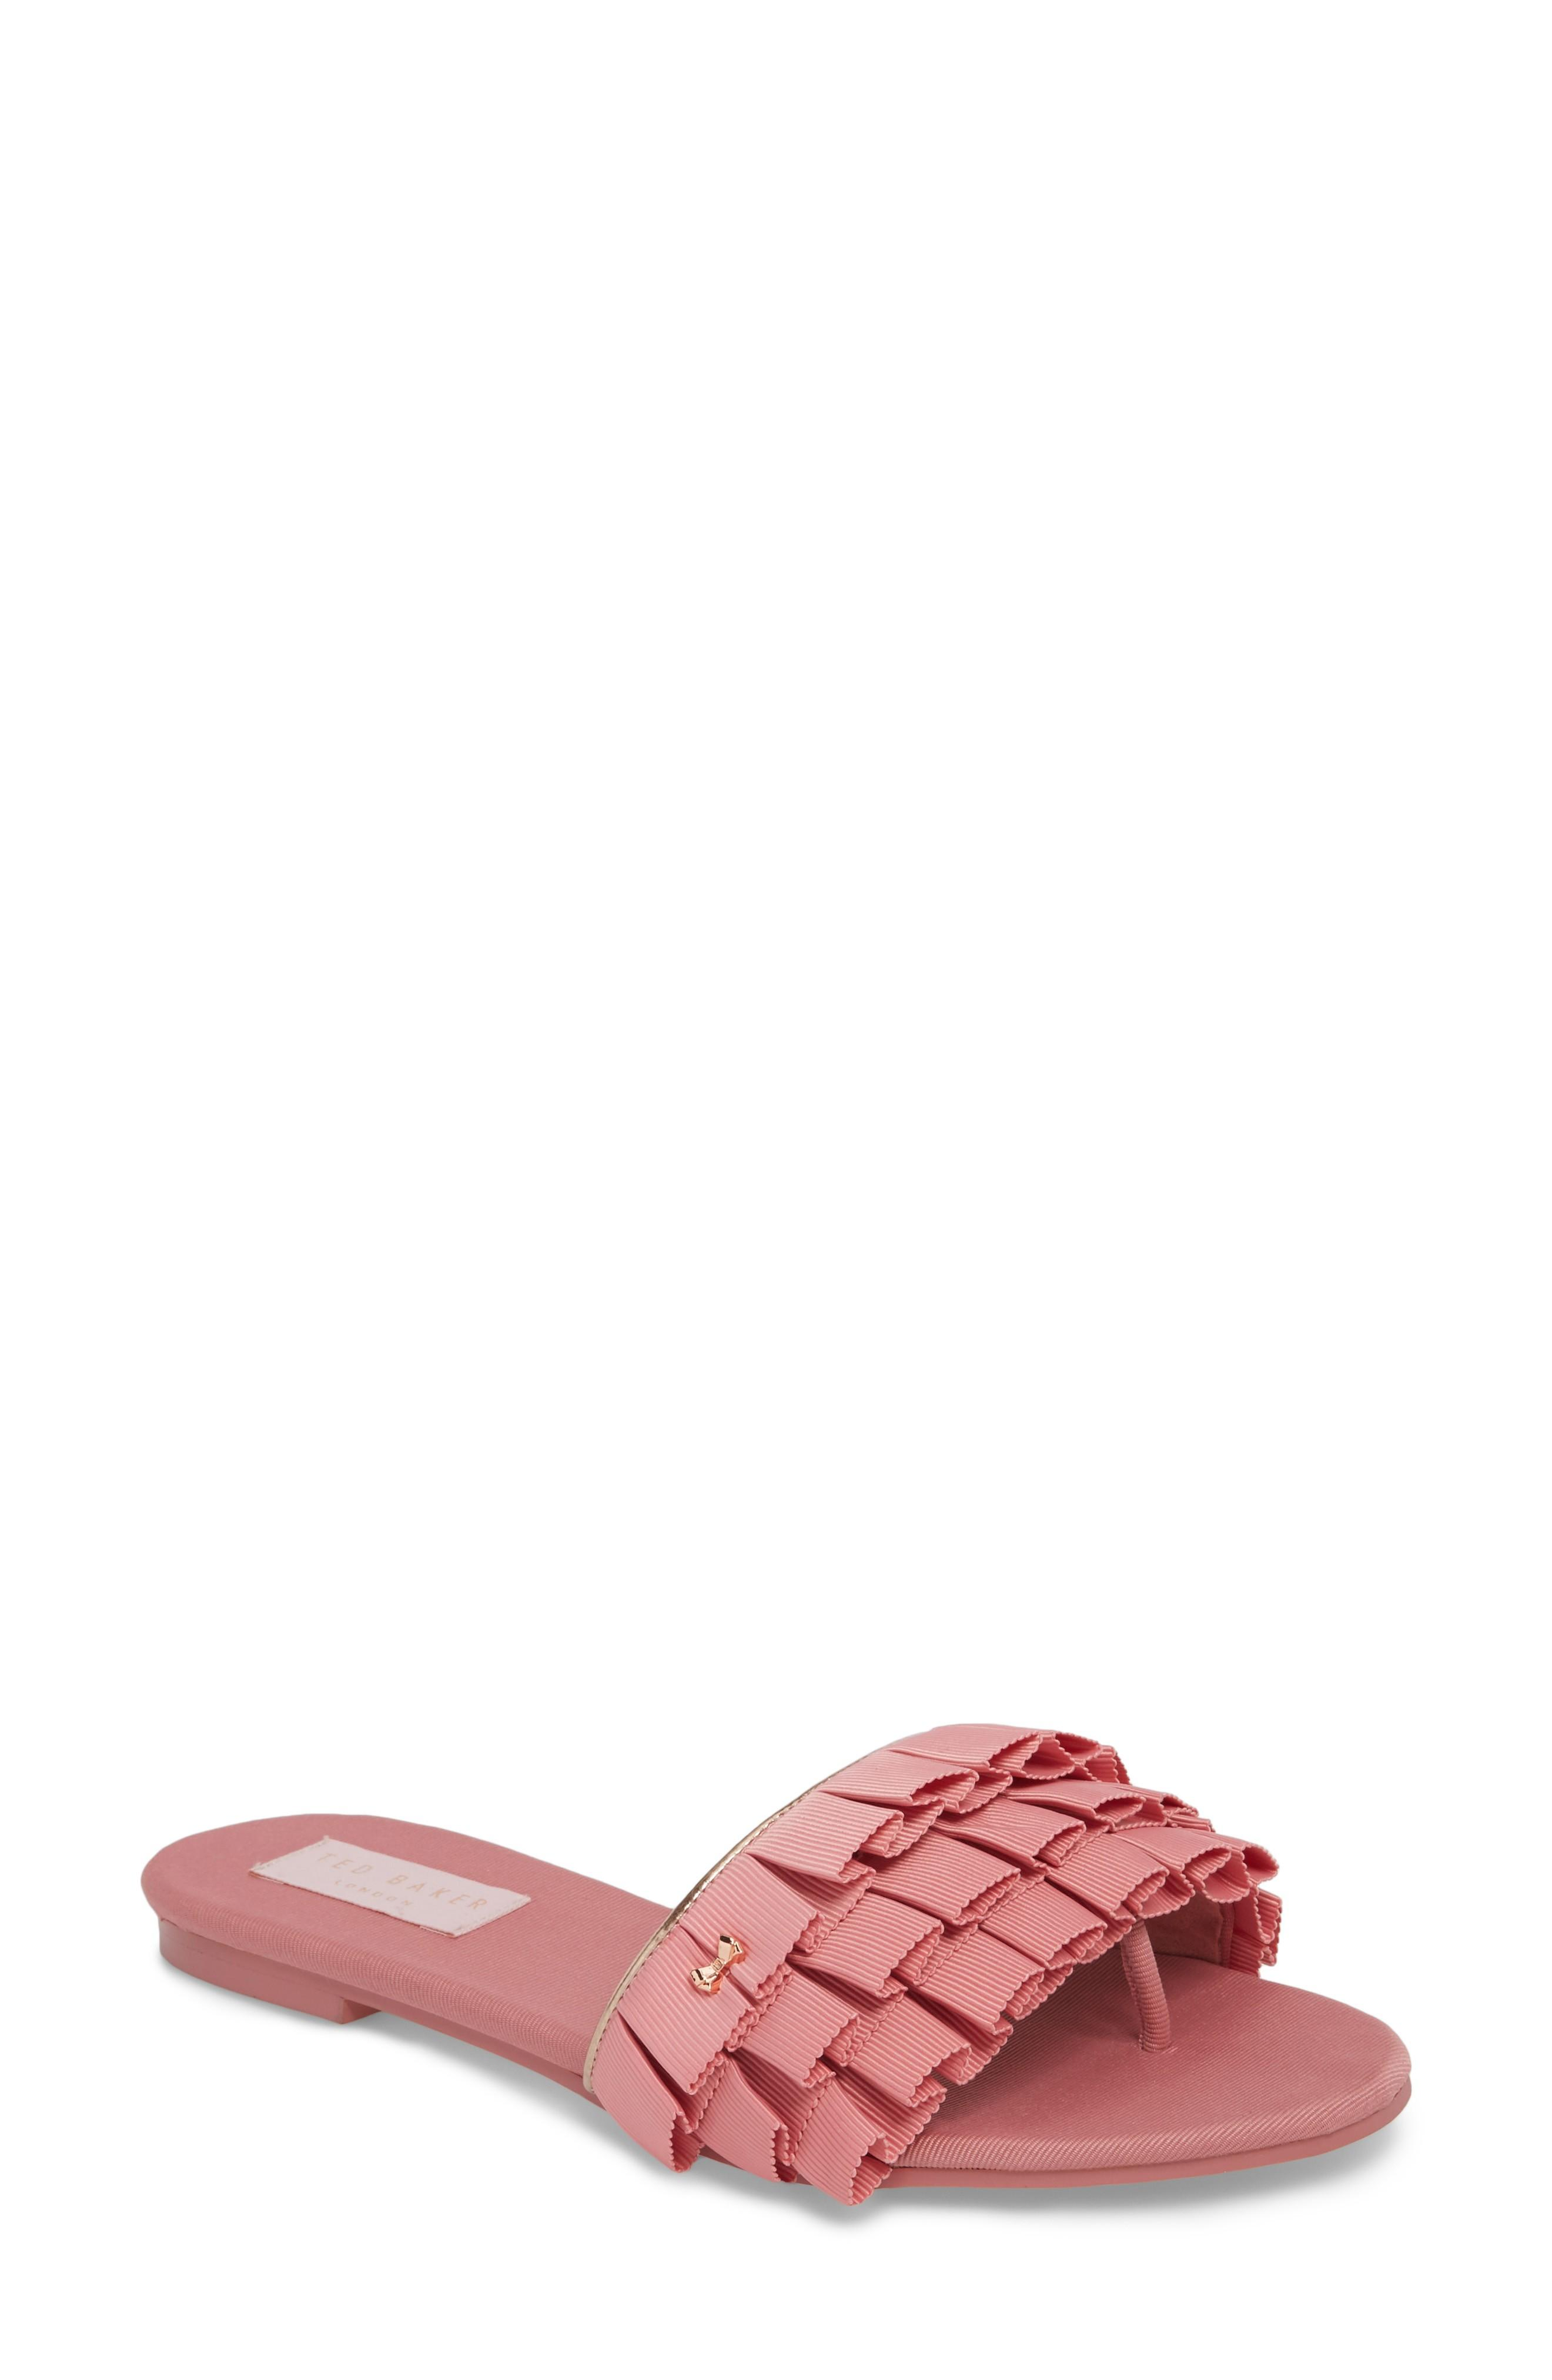 Ted Baker Towdi Sandal In Pink Fabric